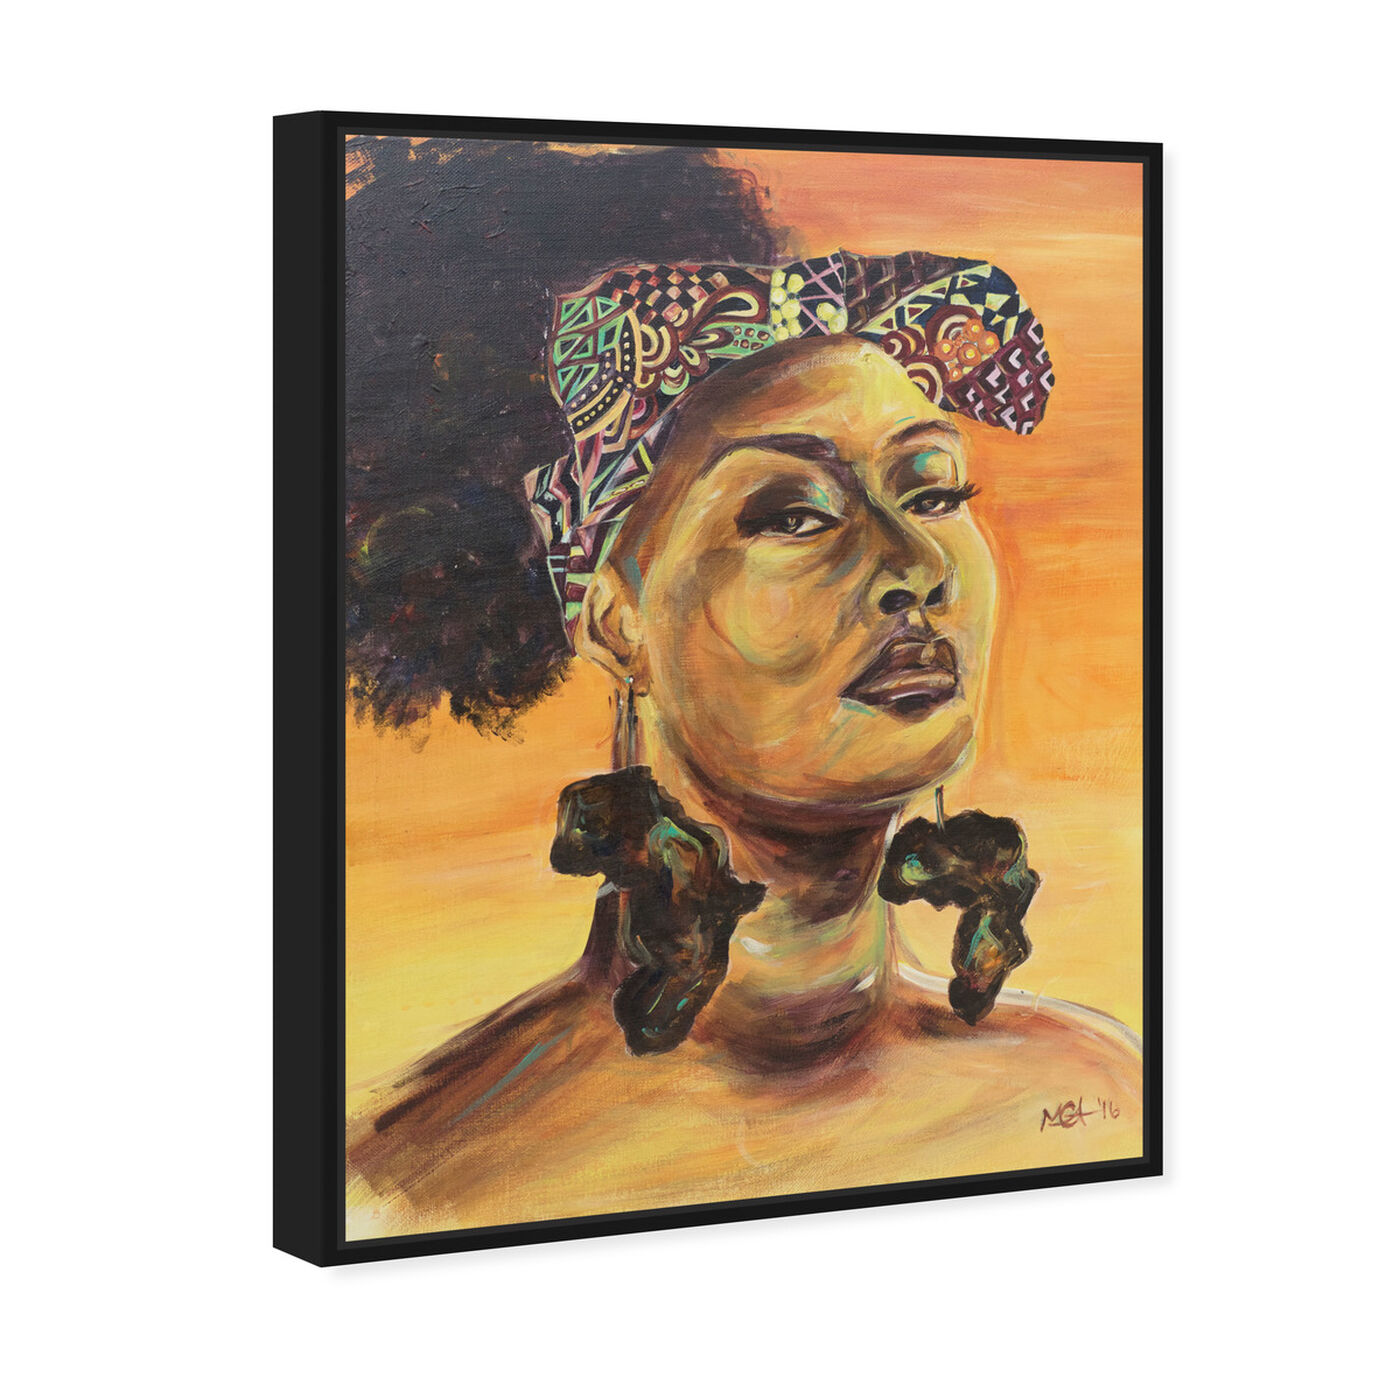 Angled view of Marissa Anderson - African Pride featuring people and portraits and portraits art.